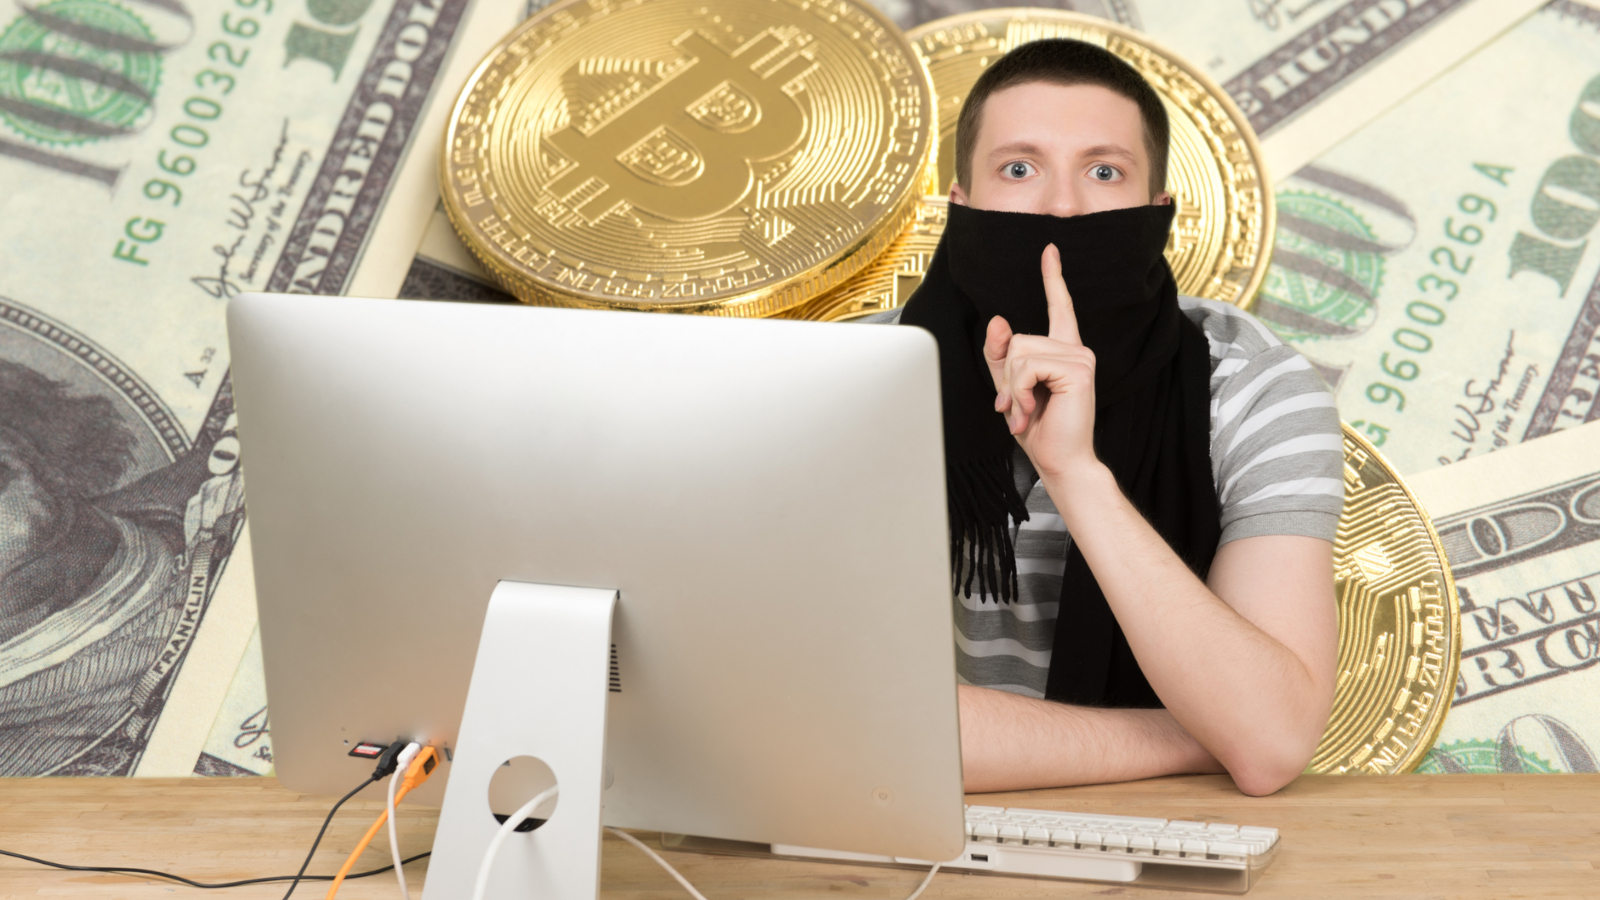 Here's how to fight back against Bitcoin-ransoming malware